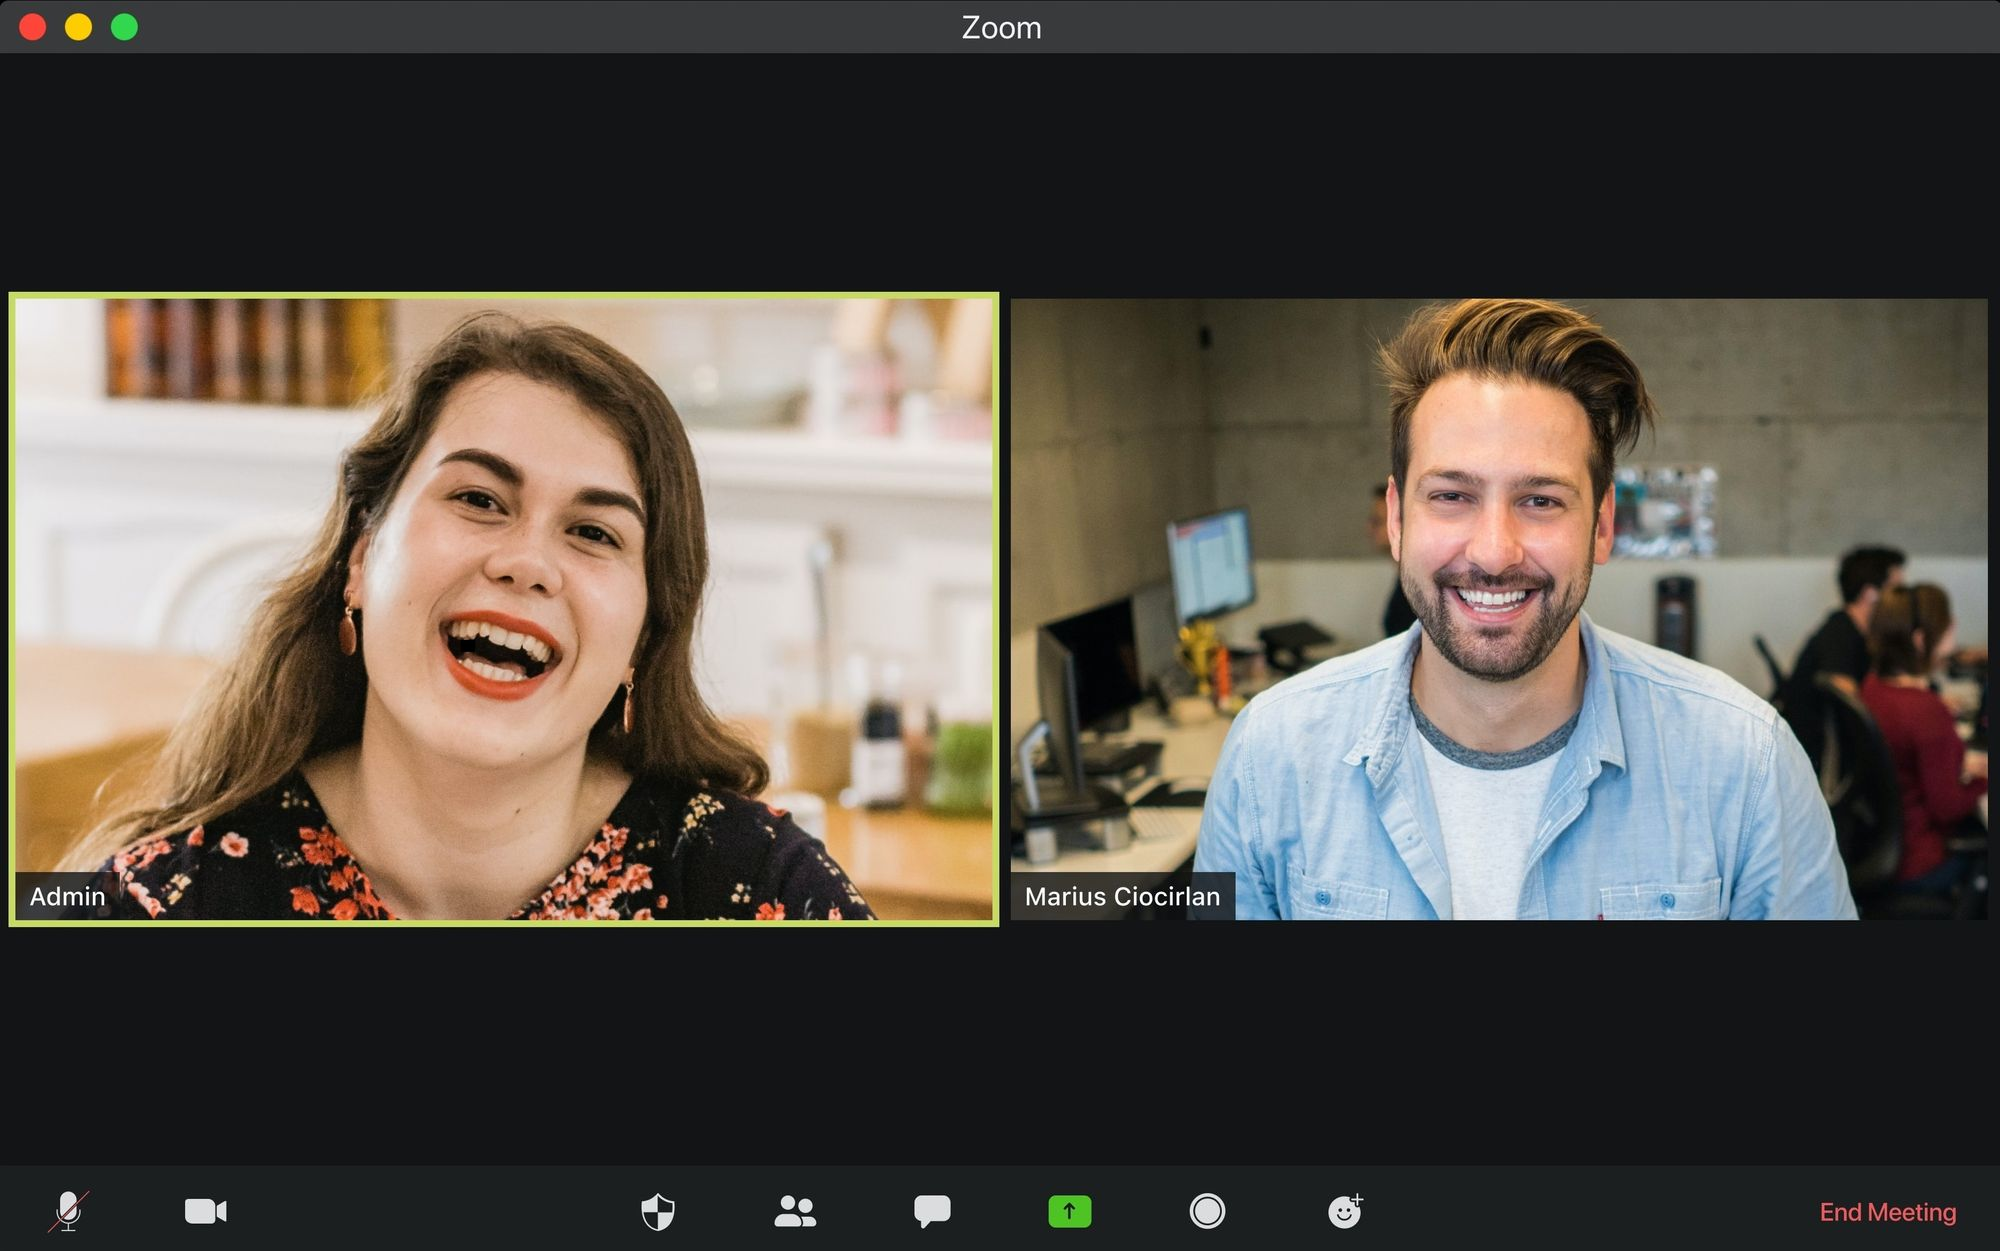 4 ways to improve your next Zoom meeting